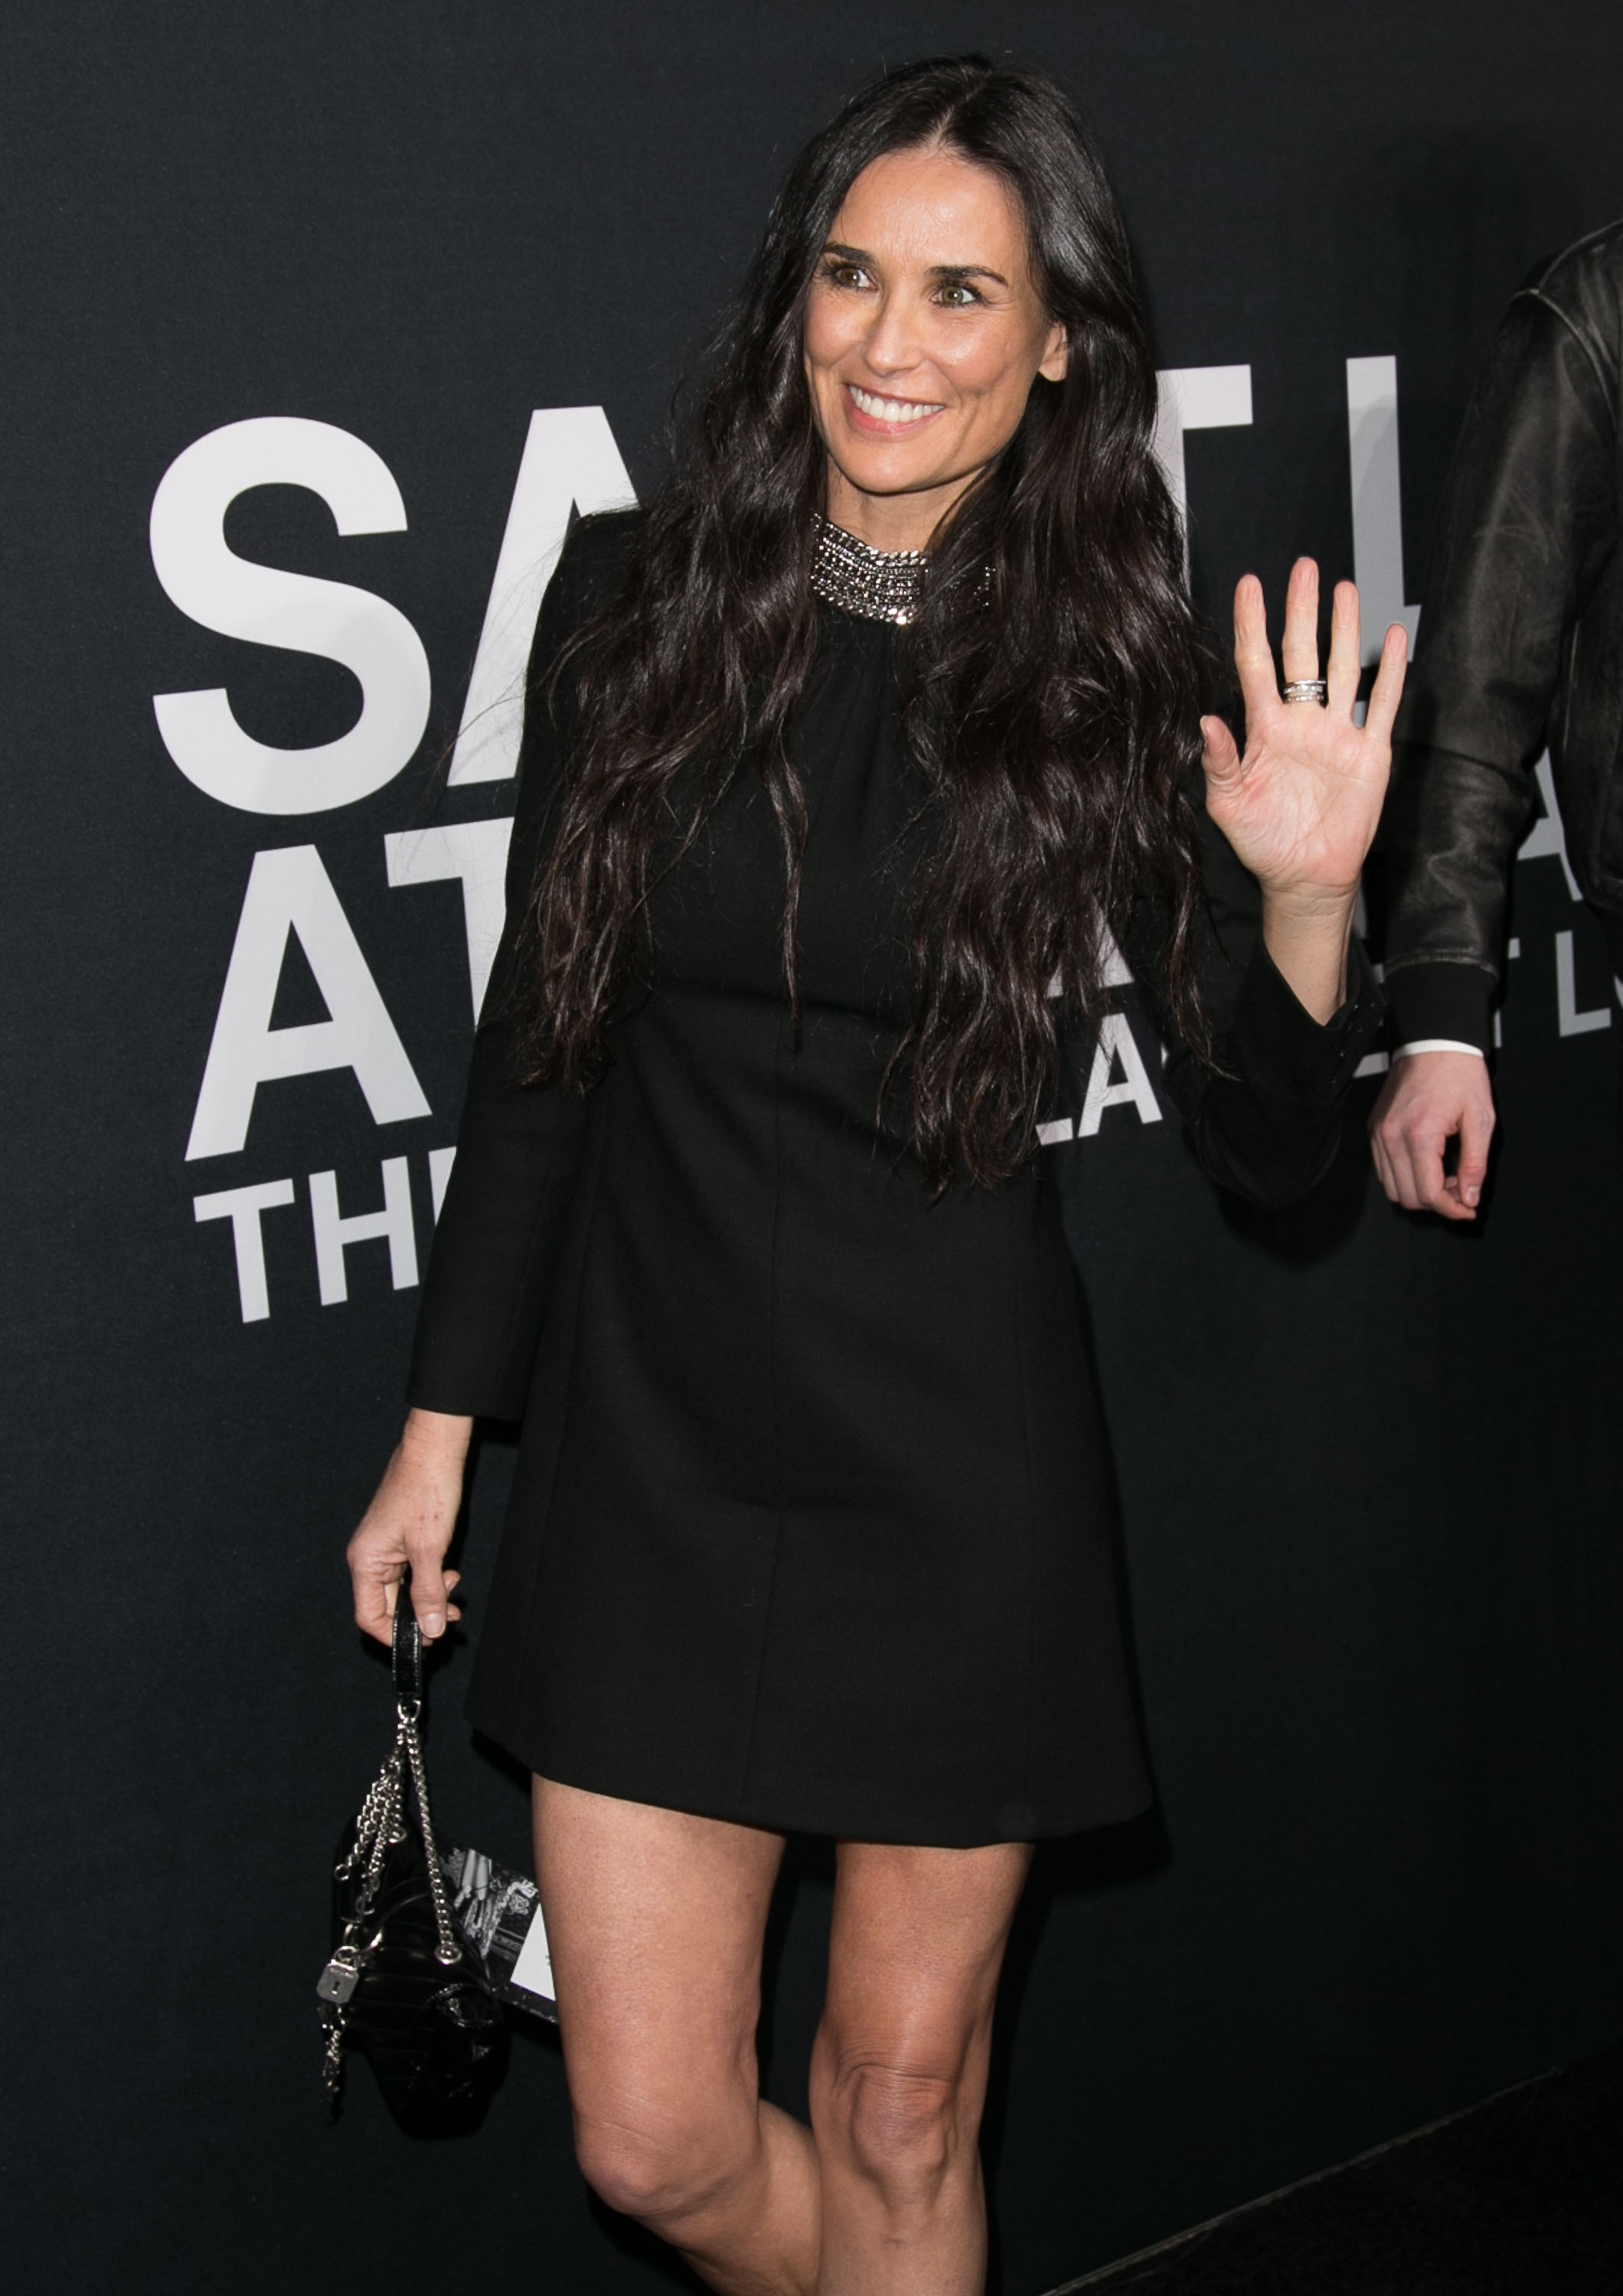 Saint Laurent at Hollywood Palladium - Arrivals                                    Featuring: Demi Moore                  Where: Los Angeles, California, United States                  When: 10 Feb 2016                  Credit: Brian To/WENN.com